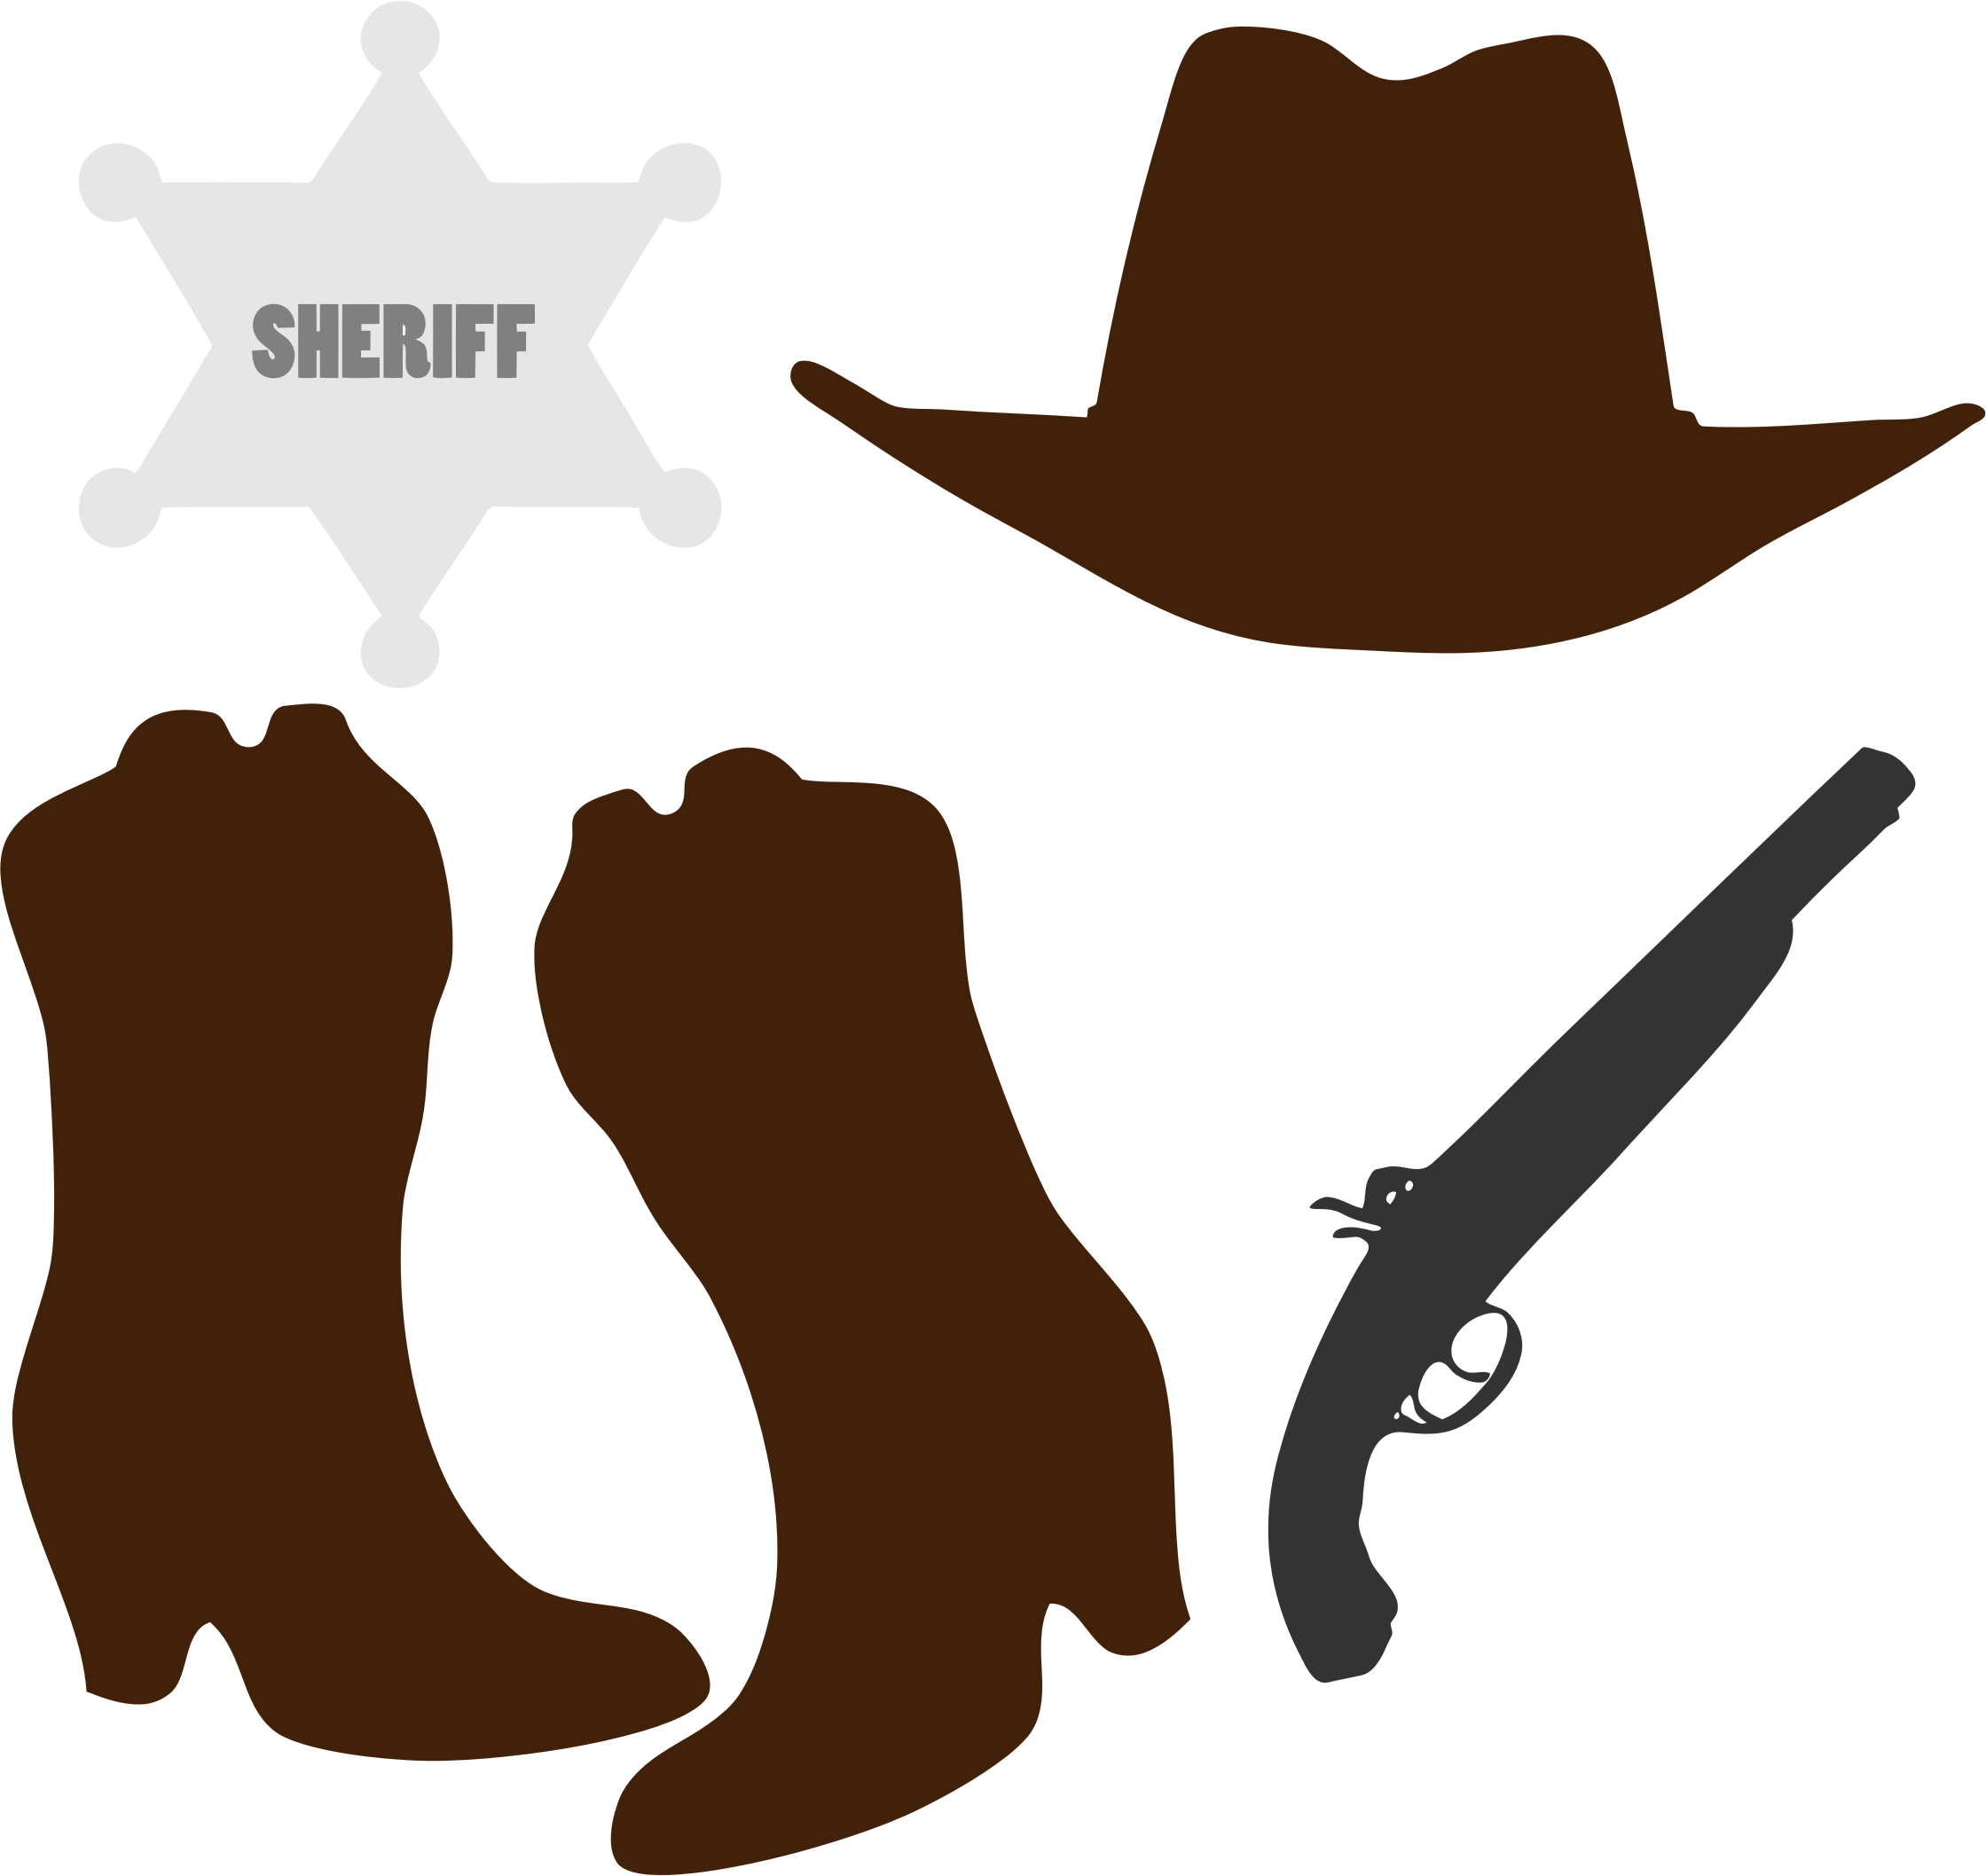 Cowboy accessories clipart clipart freeuse stock Hat n Boots Cowboy boot Clip art - Cowboy Accessories Cliparts png ... clipart freeuse stock